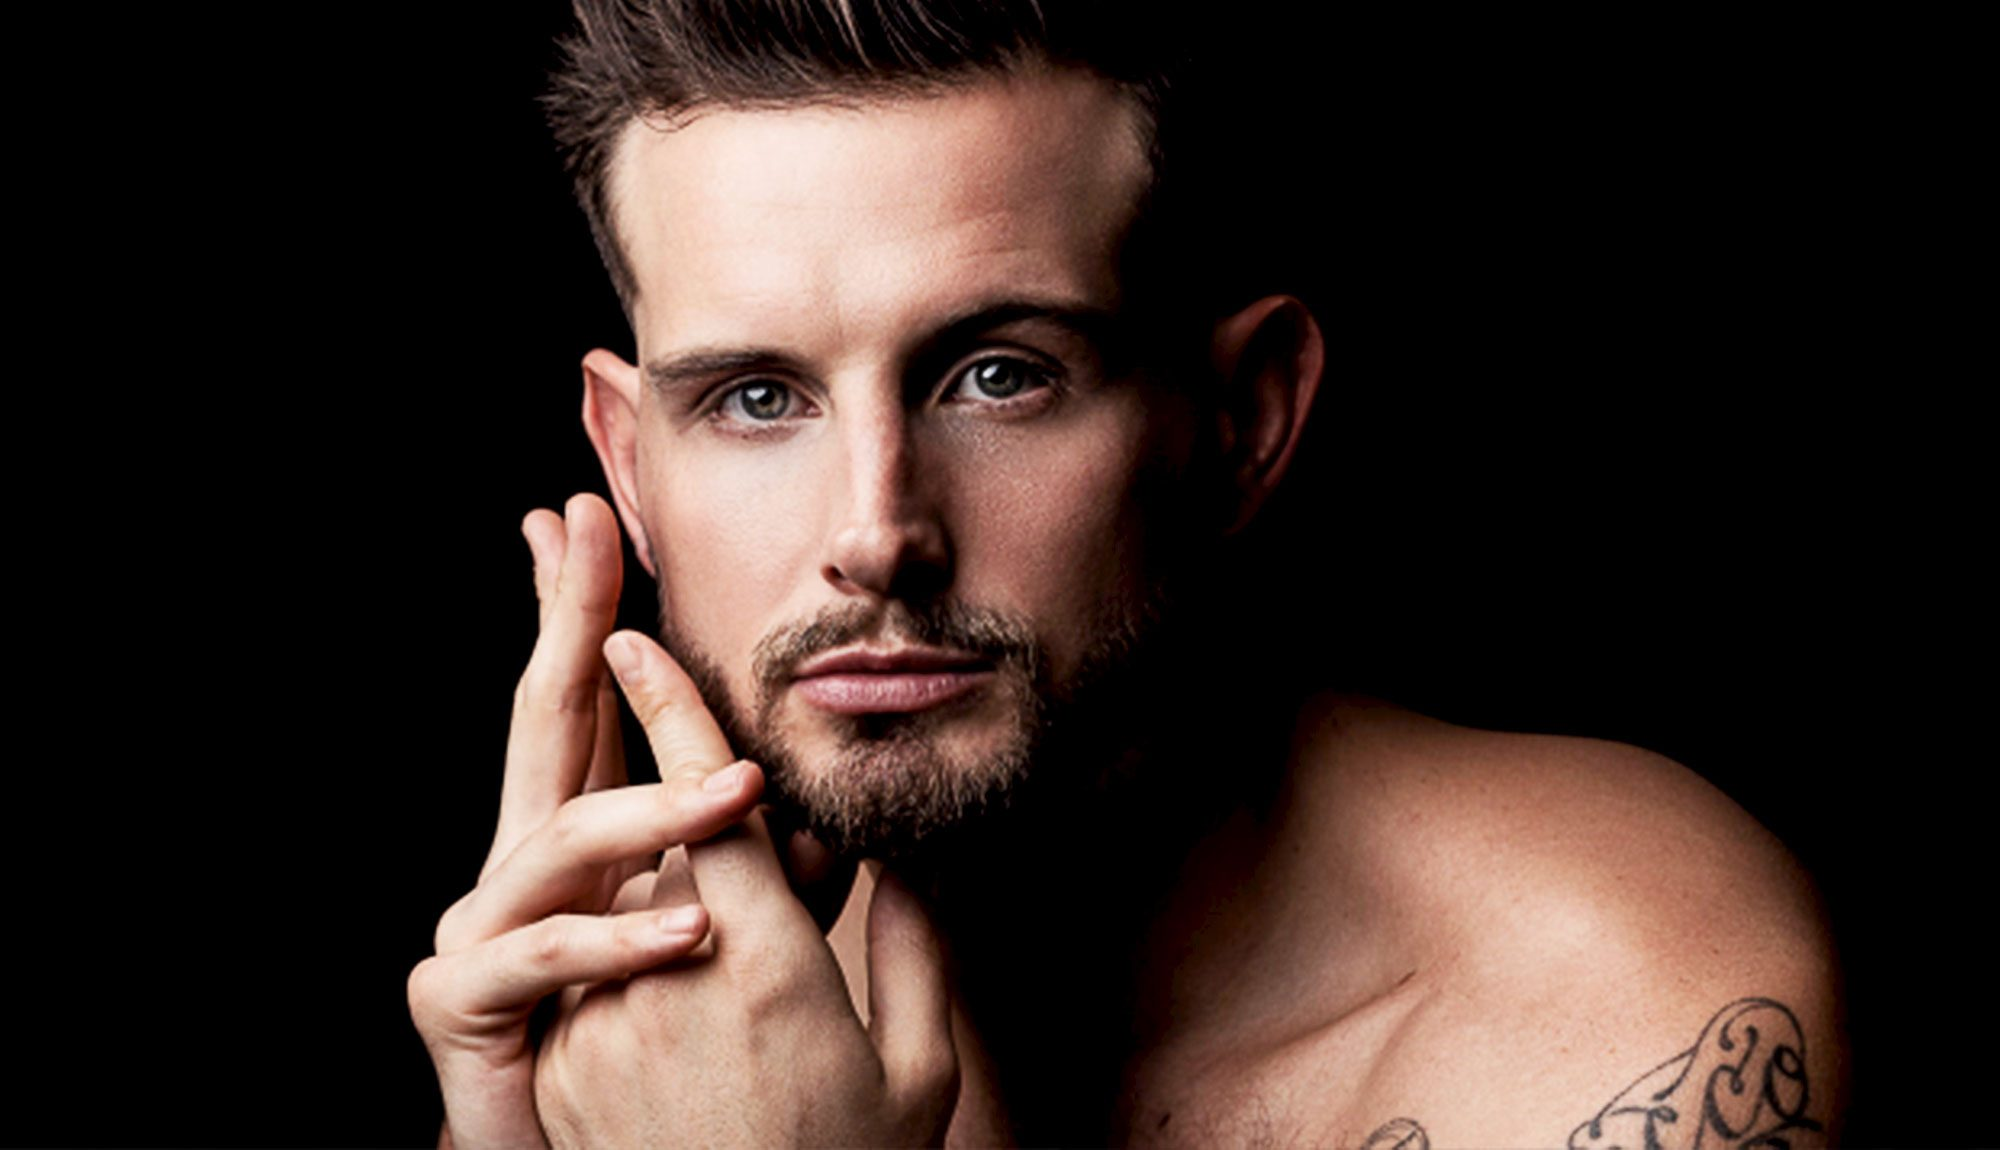 Nico Tortorella Cast As Lead Of New Walking Dead Spin-Off Series - Skybound  Entertainment